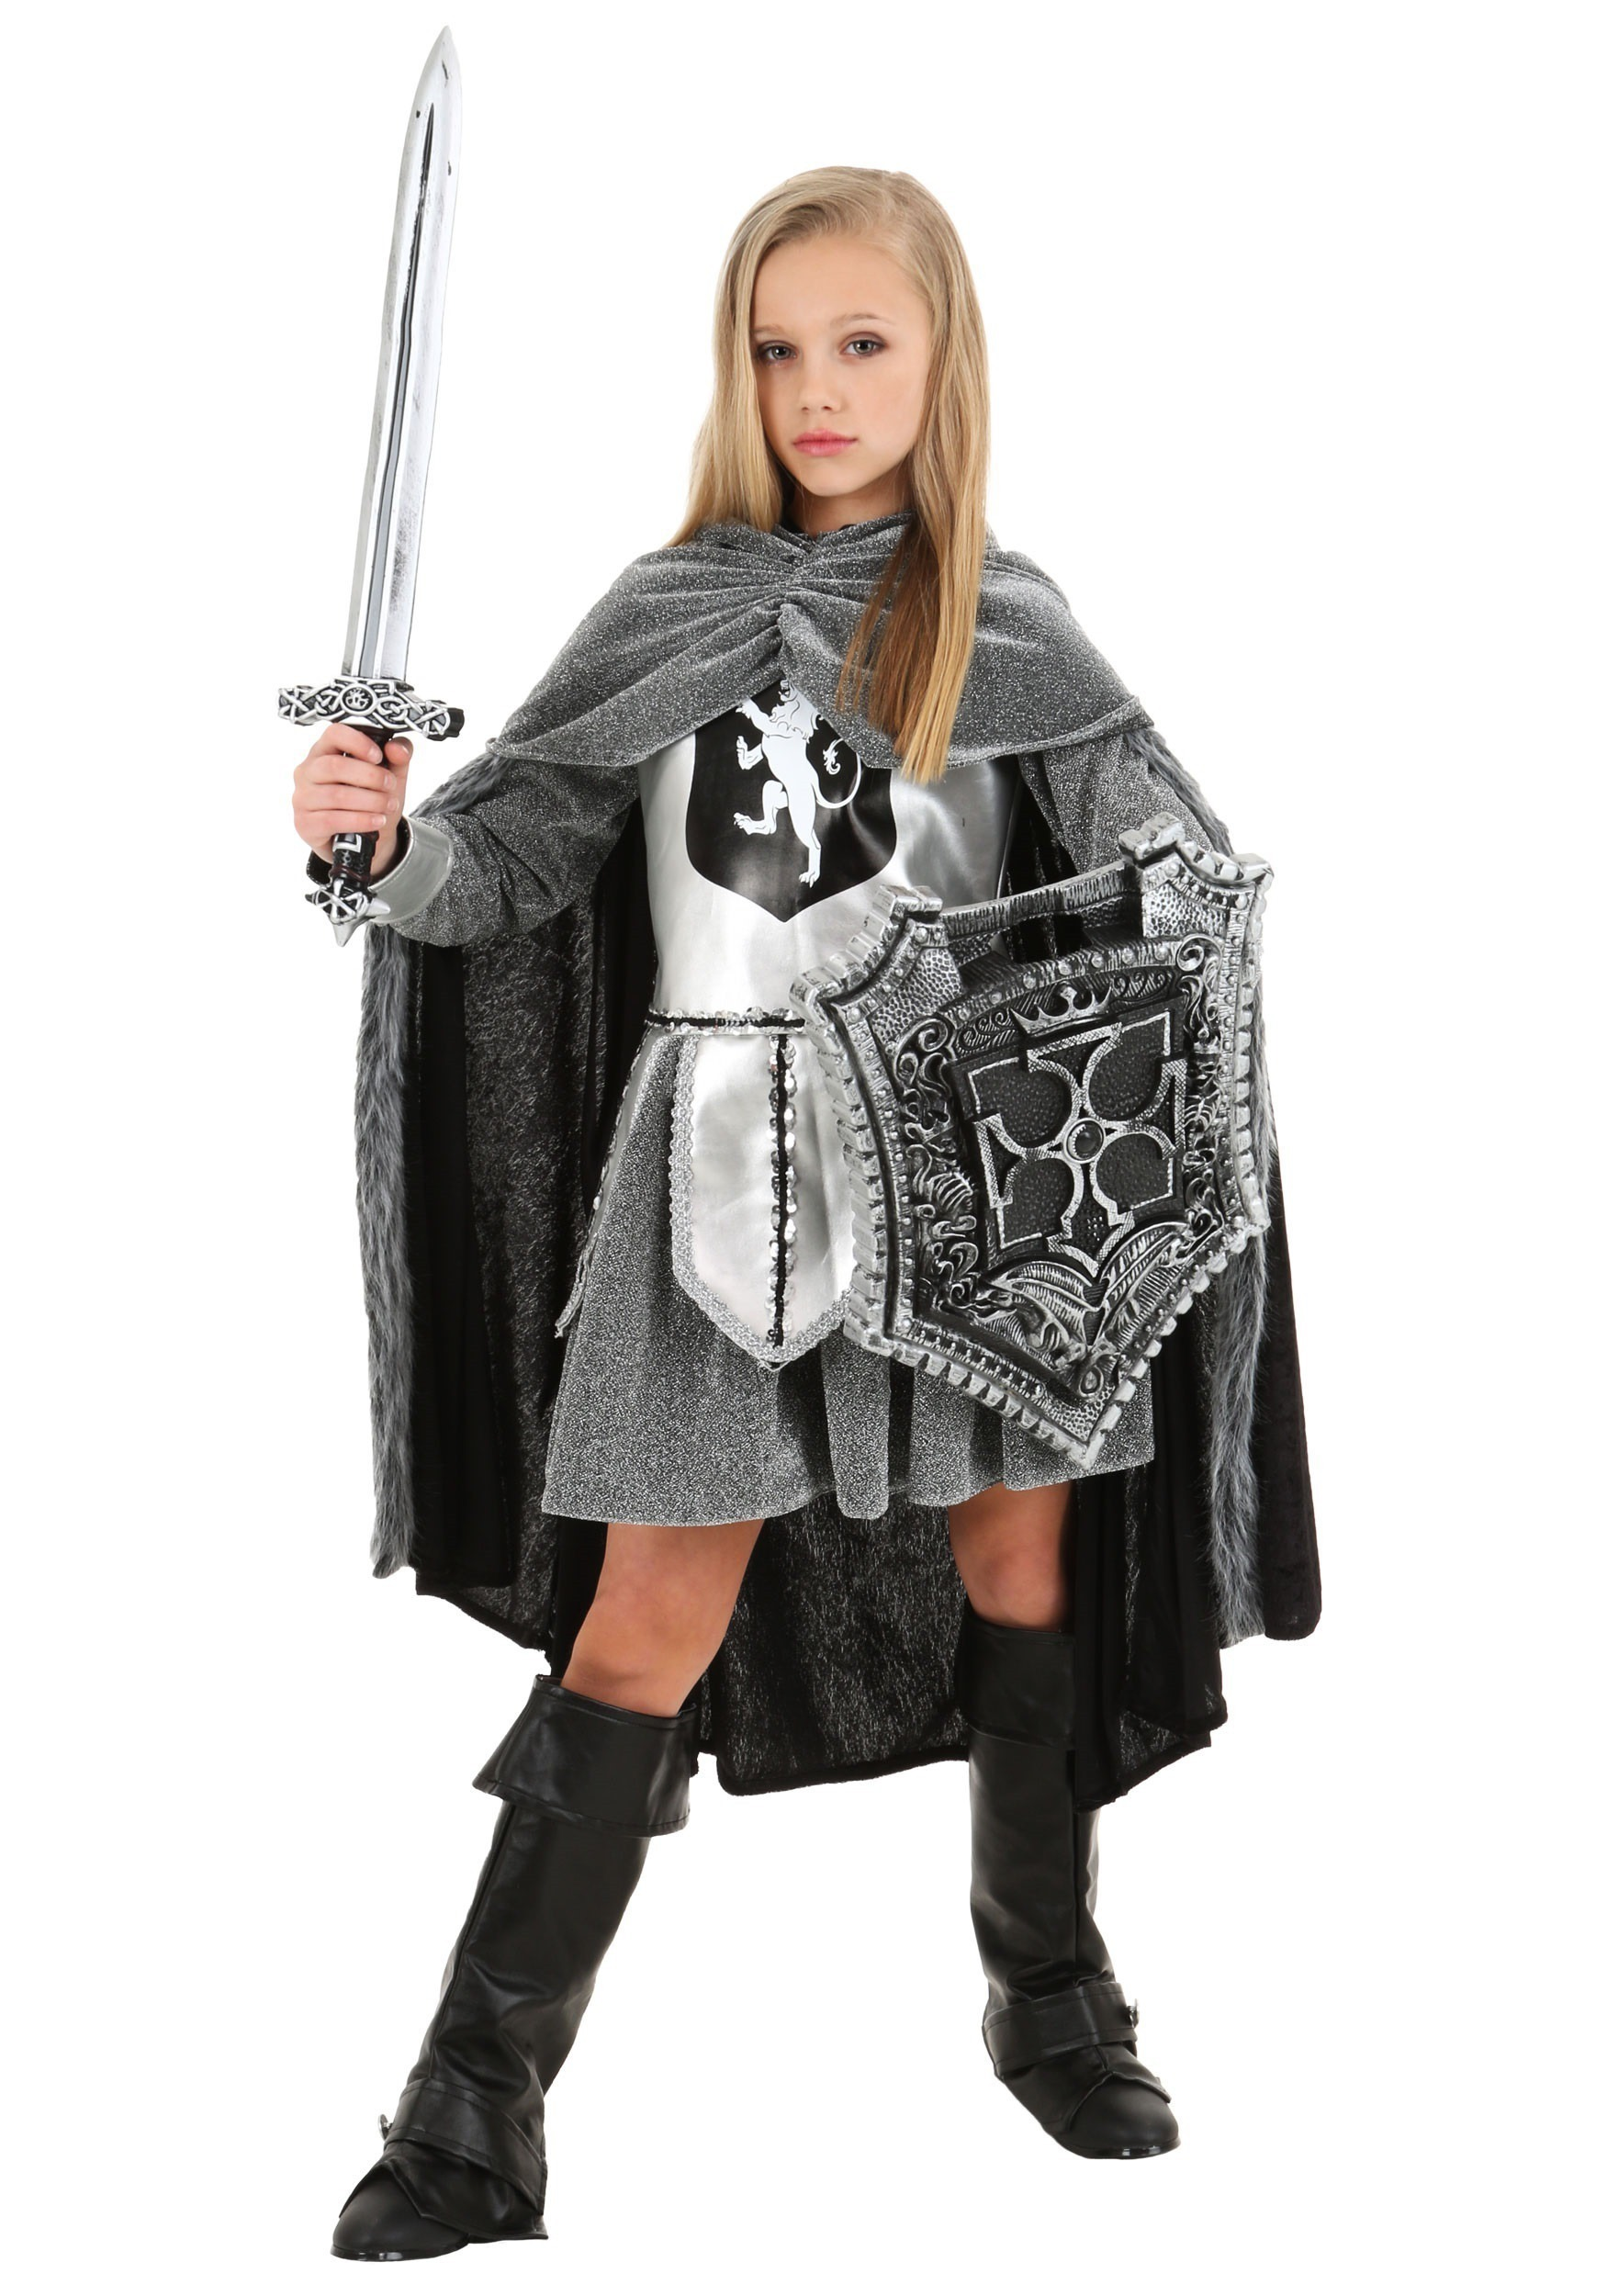 Girlu0027s Warrior Knight Costume  sc 1 st  Halloween Costumes & Child Renaissance Costumes - Childrenu0027s Renaissance Costume